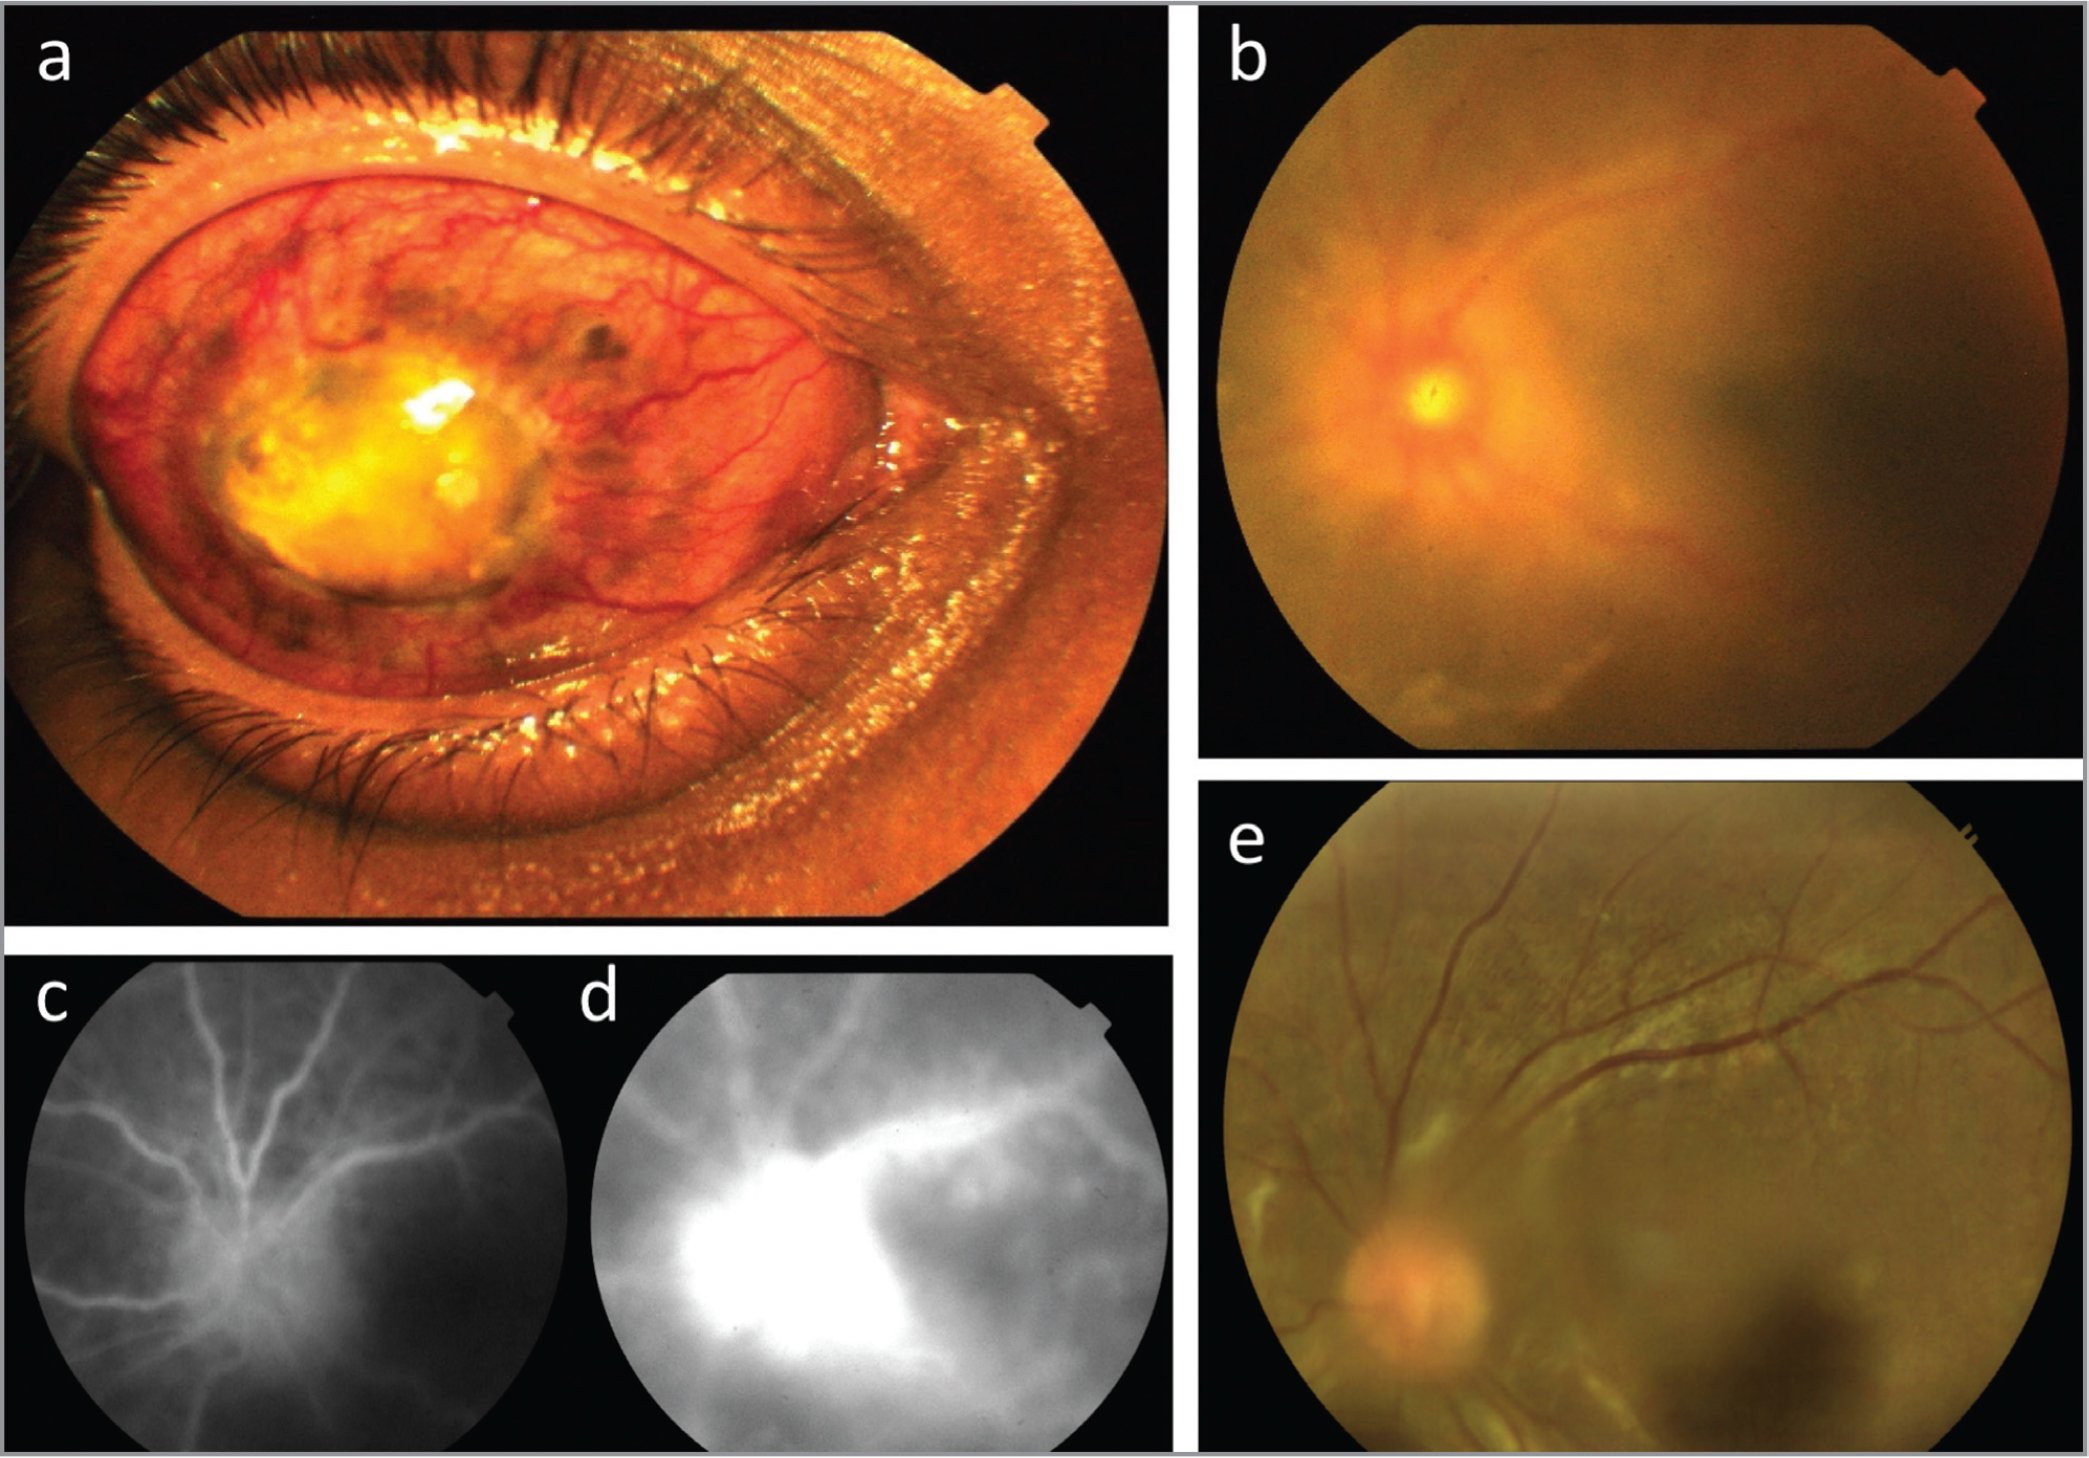 External photograph (a) shows the exciting blind right eye with no light perception following traumatic injury 20 years ago. Fundus photography (b) of the sympathizing left eye with acute sympathetic ophthalmia shows presence of vitritis with disc swelling and perivasculitis in the posterior pole. Fluorescein angiography in the early frame (c) shows early pin-point hypofluoresent spots in the superior midperipheral area and early disc hyperfluorescence. In the late frame of the angiography (d), there is leakage at the disc and diffuse perivascular leakage. Follow-up photograph at 6 months shows resolution of disc swelling and vitreous haze, along with significant reduction in vitreous opacities (e).